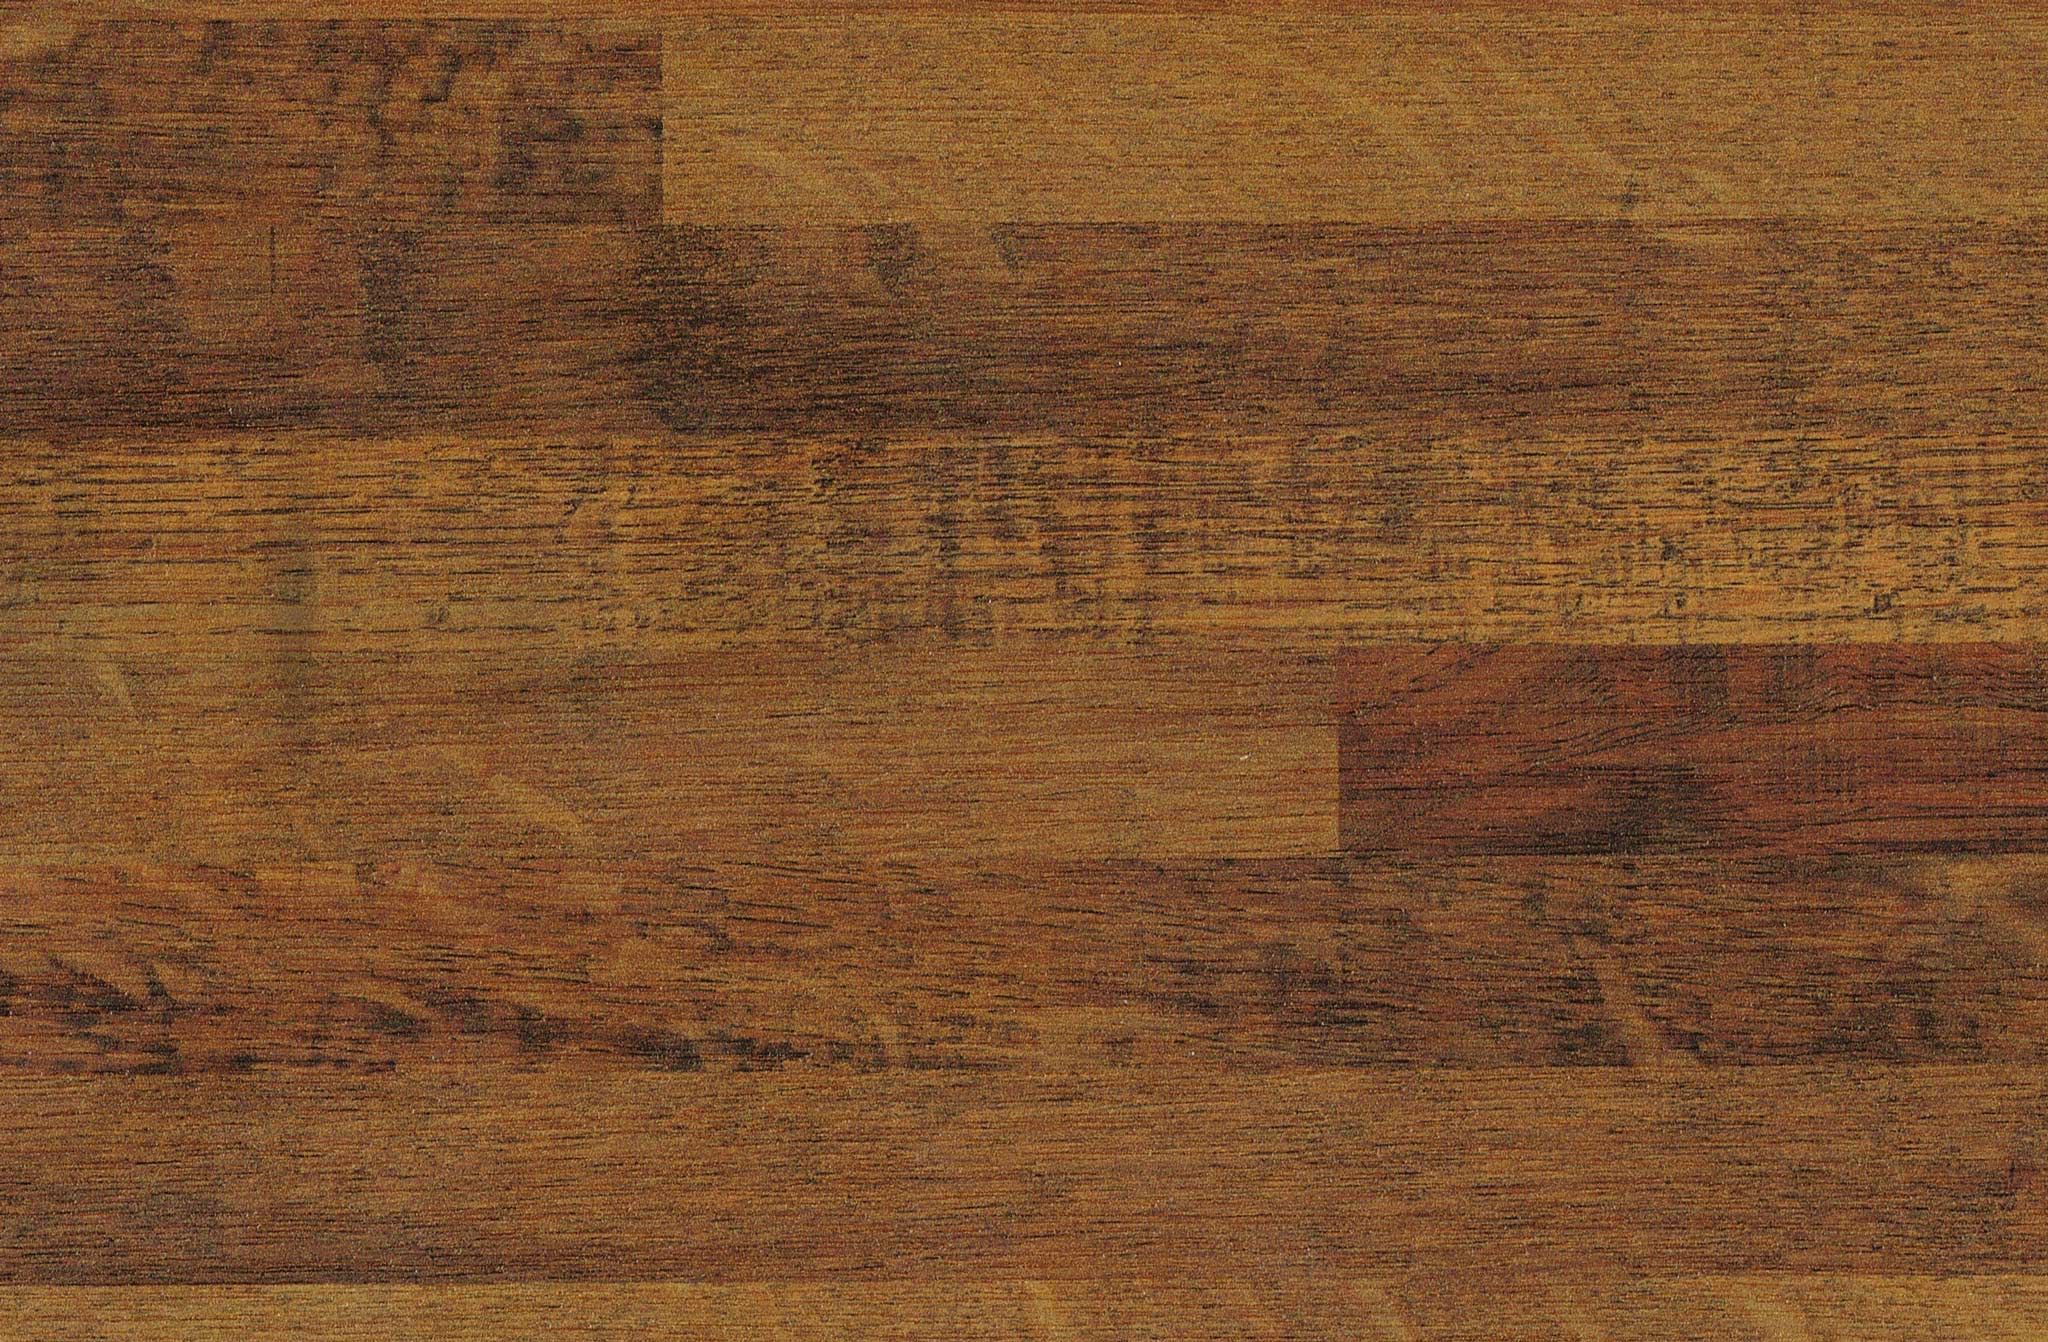 Aeon Old Mill Oak worktop sample.